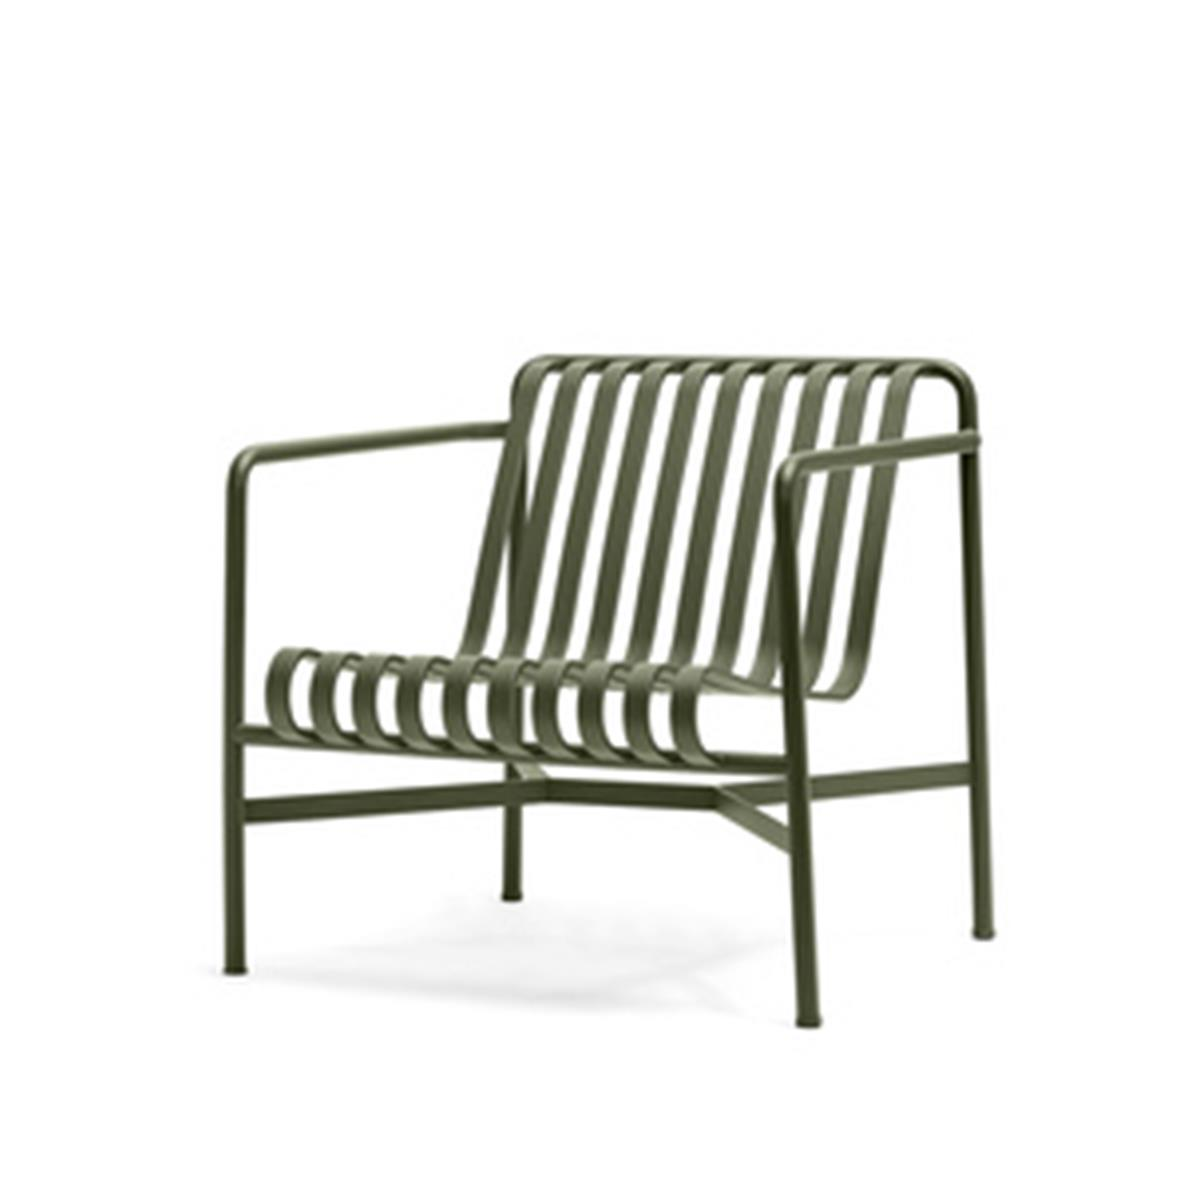 Palissade Lounge Chair Low - Olive